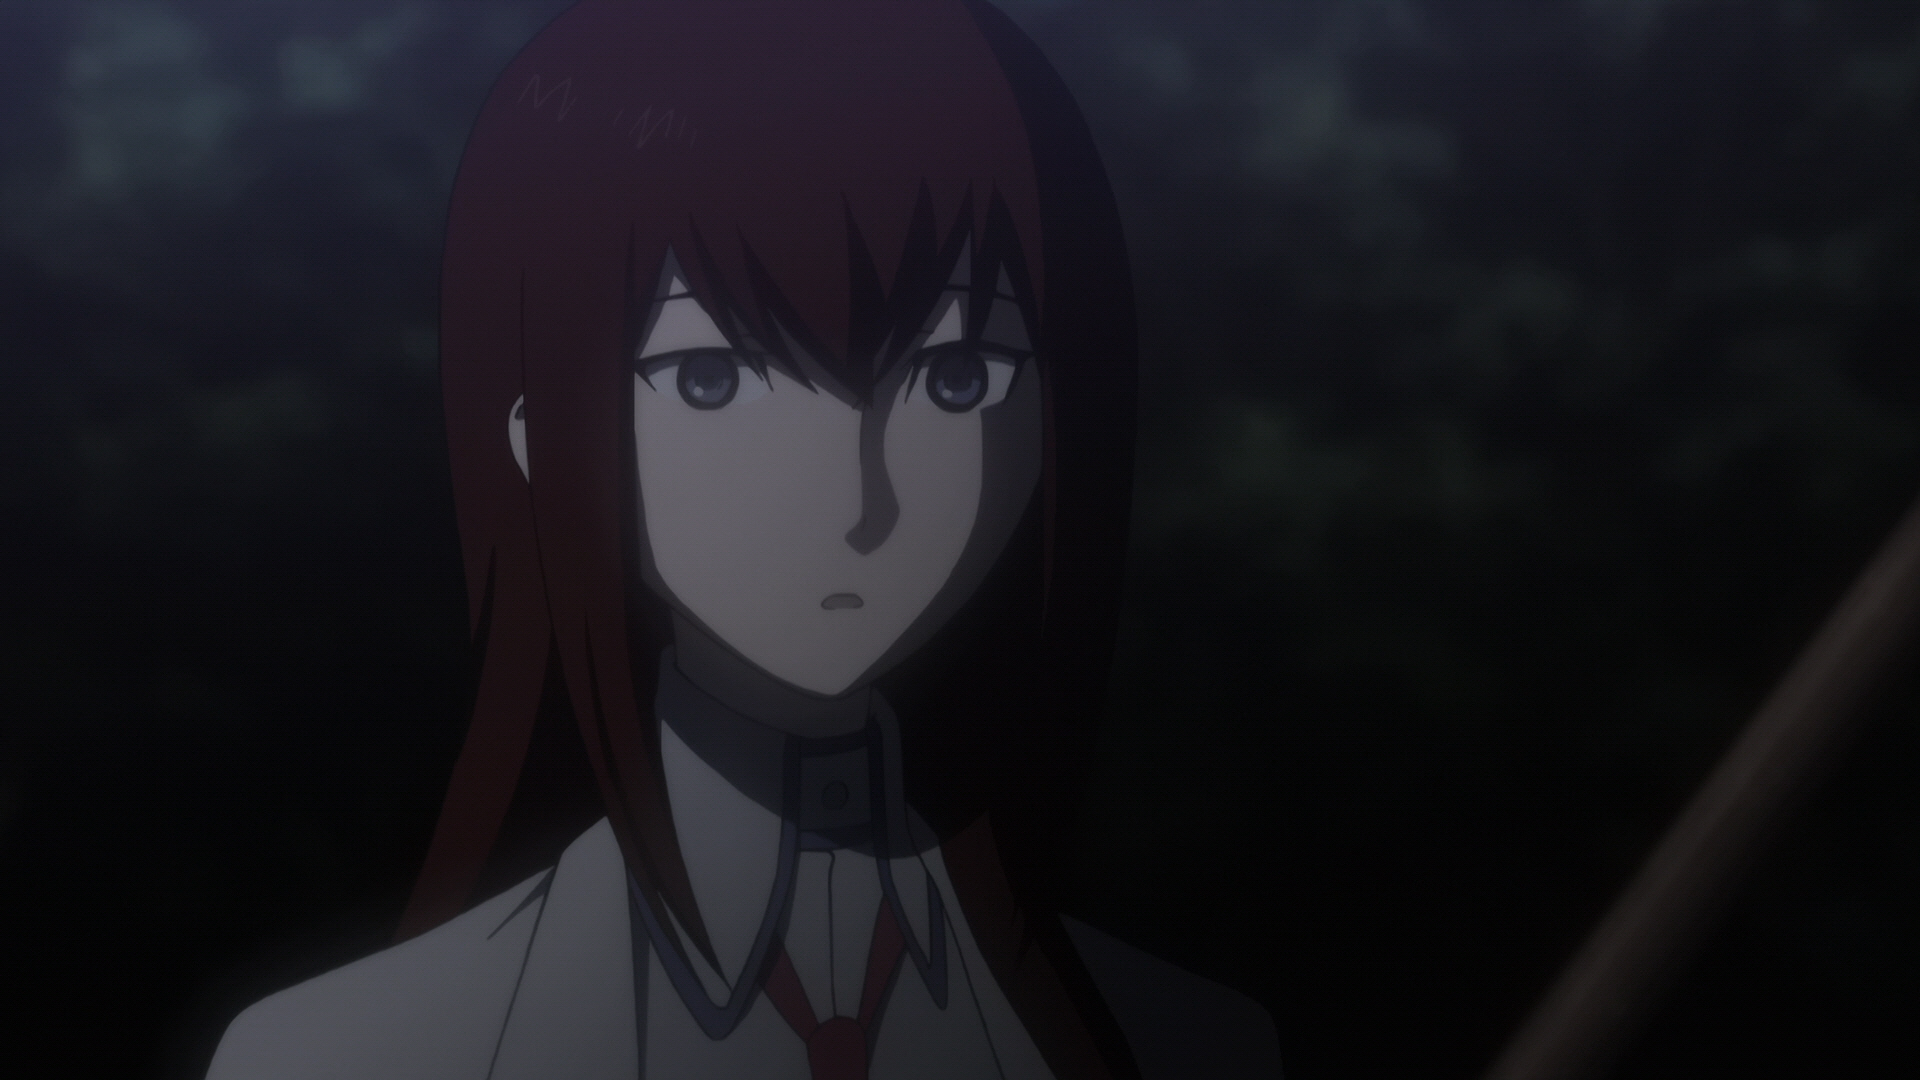 Steins Gate Episode 11 Dogma in Event Horizon 14